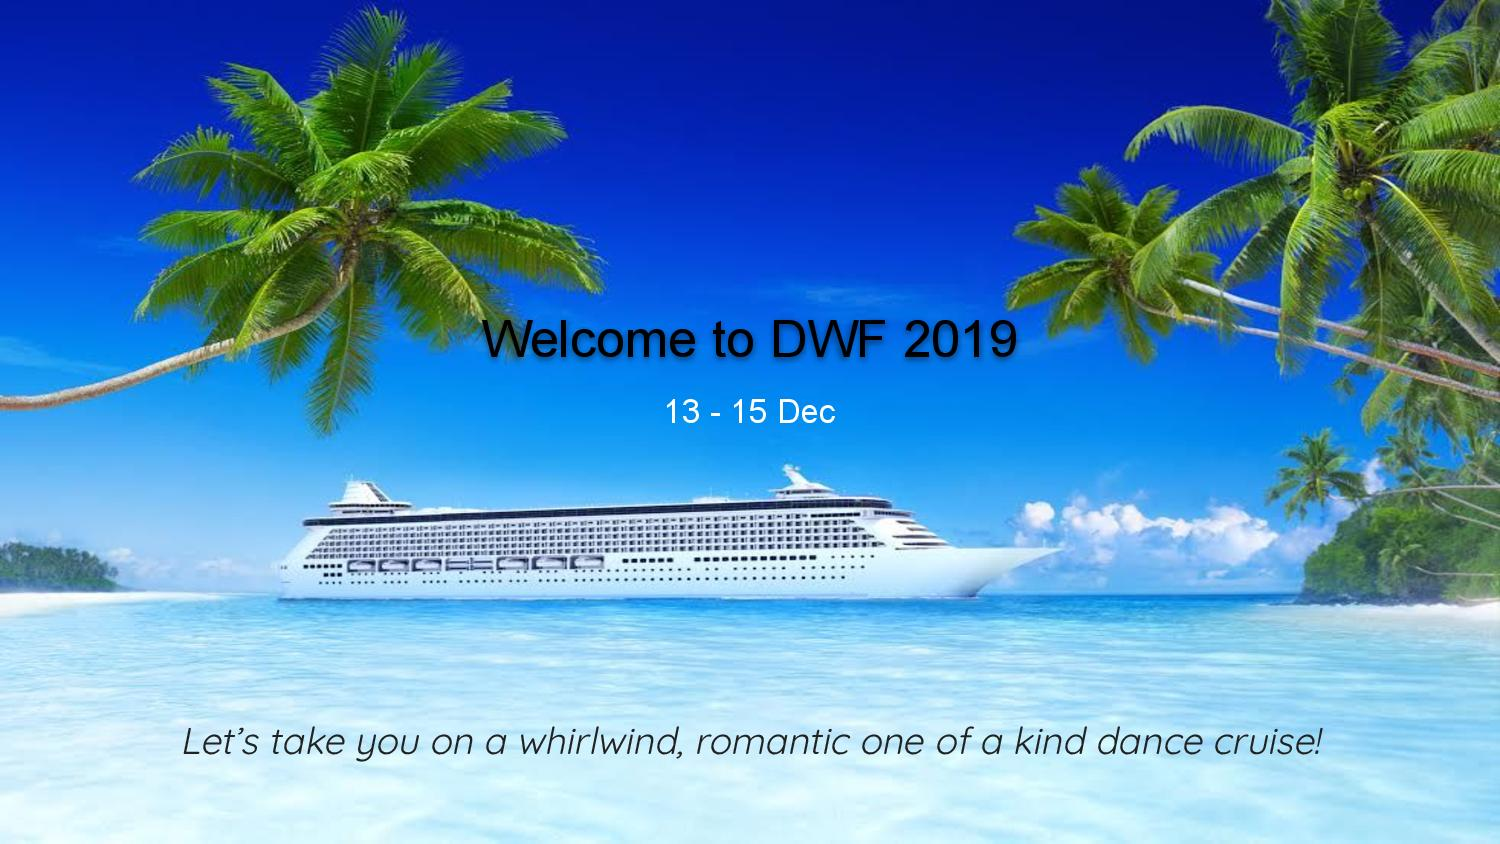 DWF 2019 - Welcome-page-001